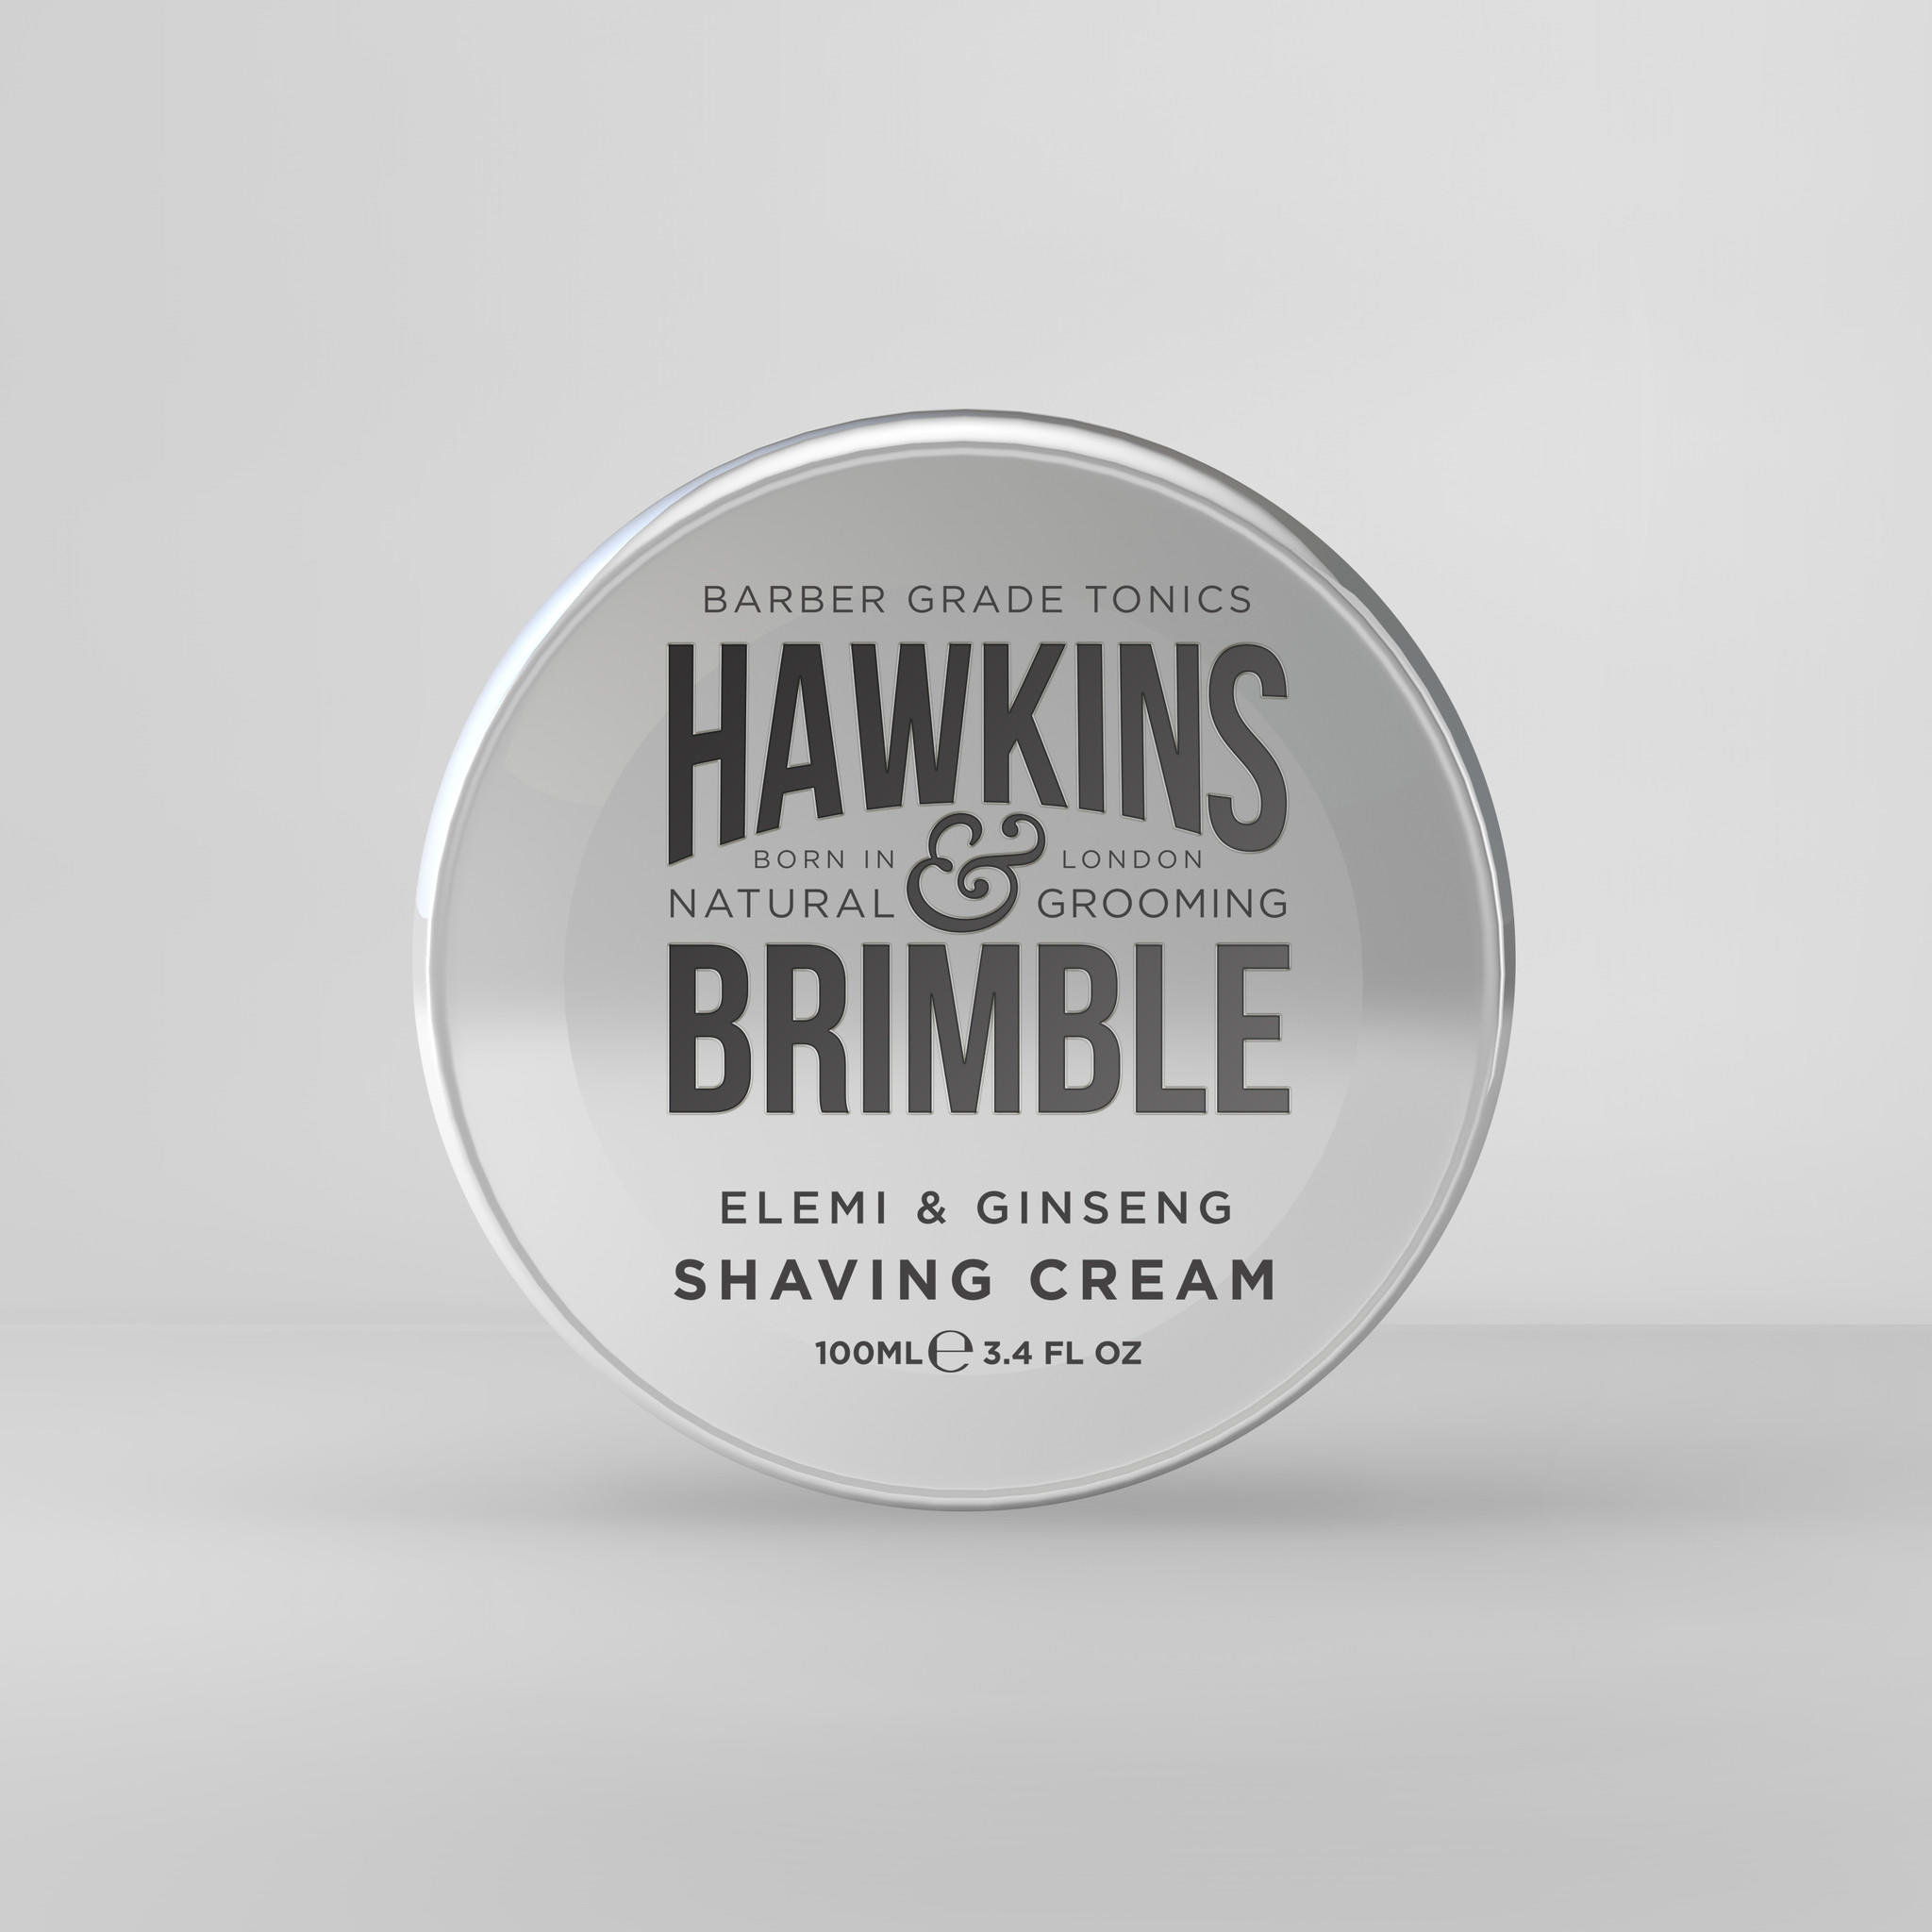 Hawkins and Brimble traditional Shaving Cream